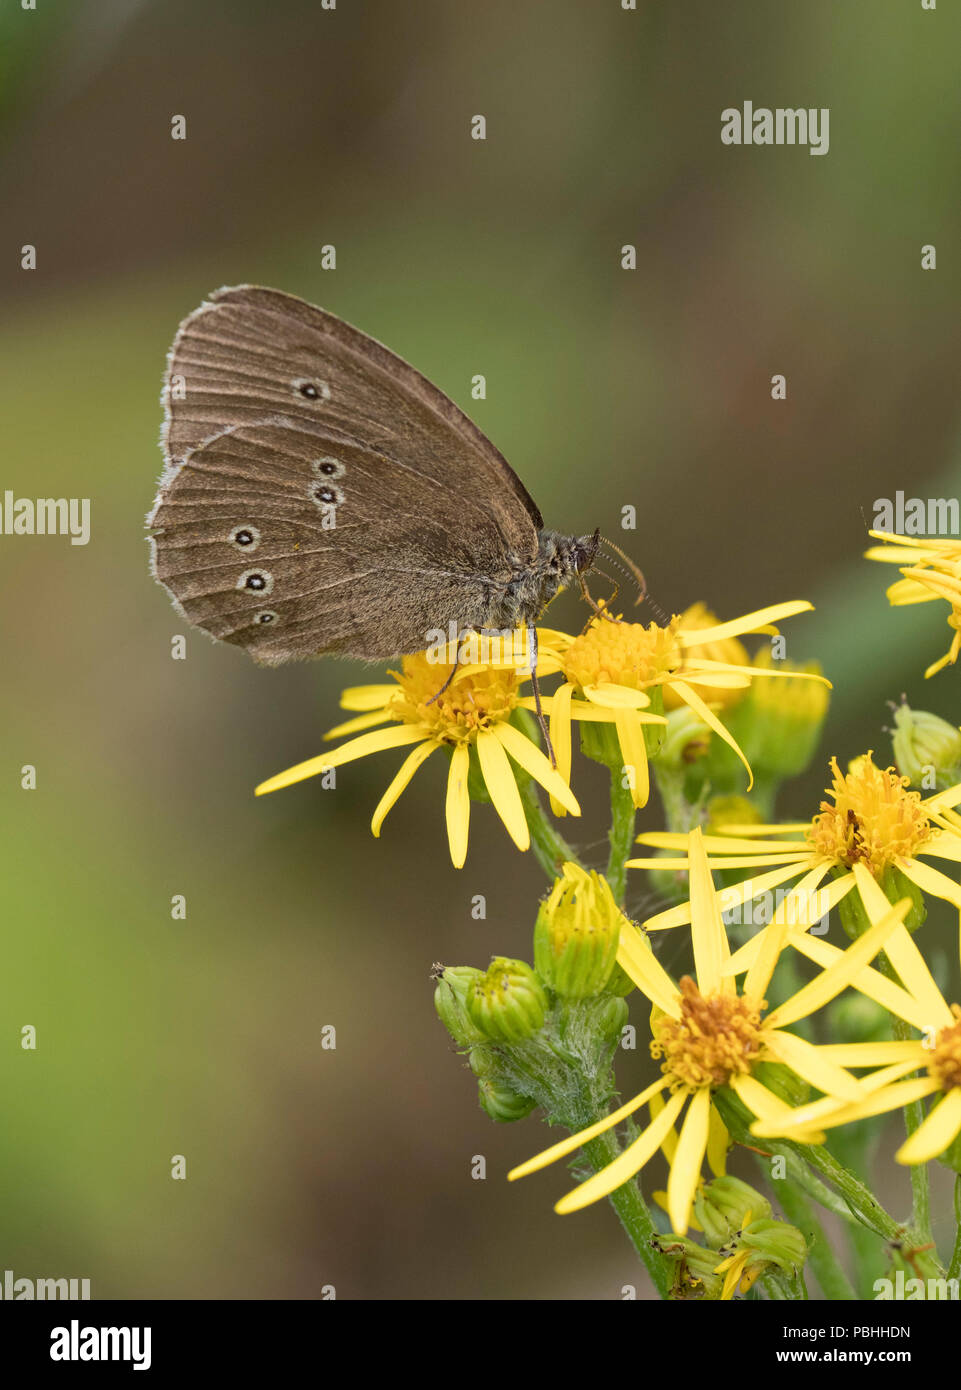 Ringlet Butterfly, Aphantopus hyperantus, single adult feeding on yellow flowers of Ragwort, Senecio jacobaea, Worcestershire, UK. - Stock Image